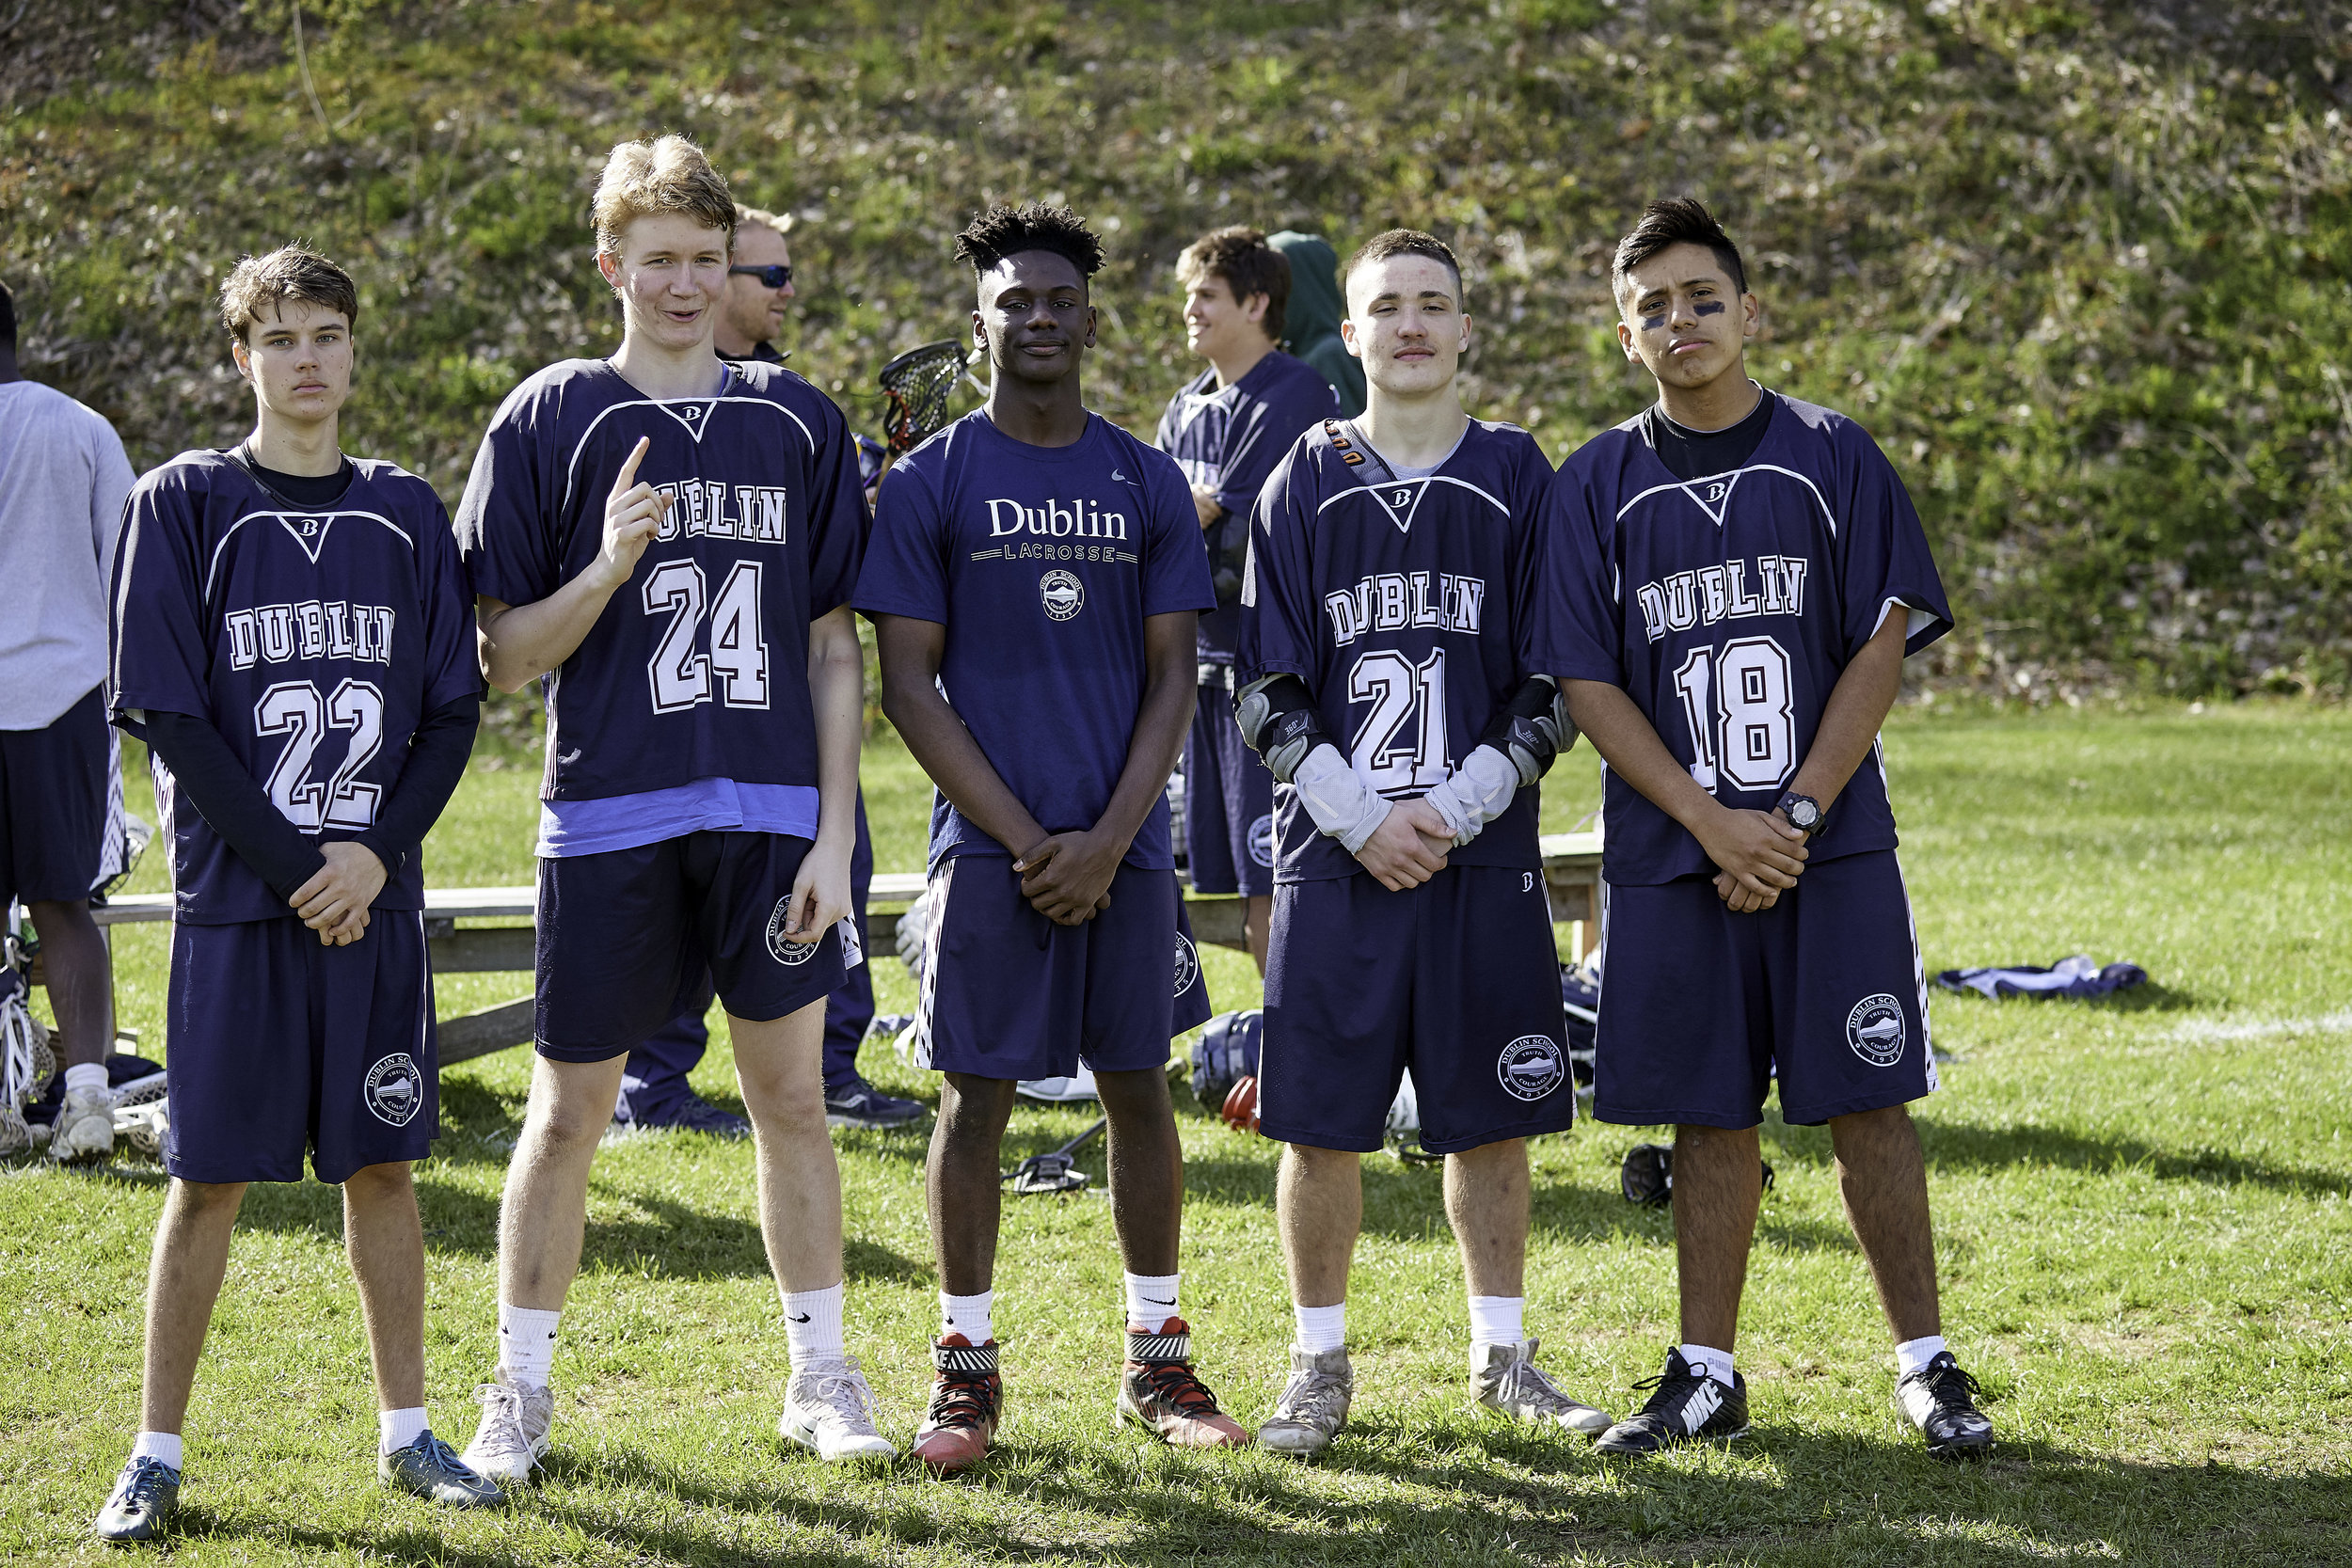 Boys Lax vs Northfield Mount Hermon JV - May 15 2019 - 0093.jpg